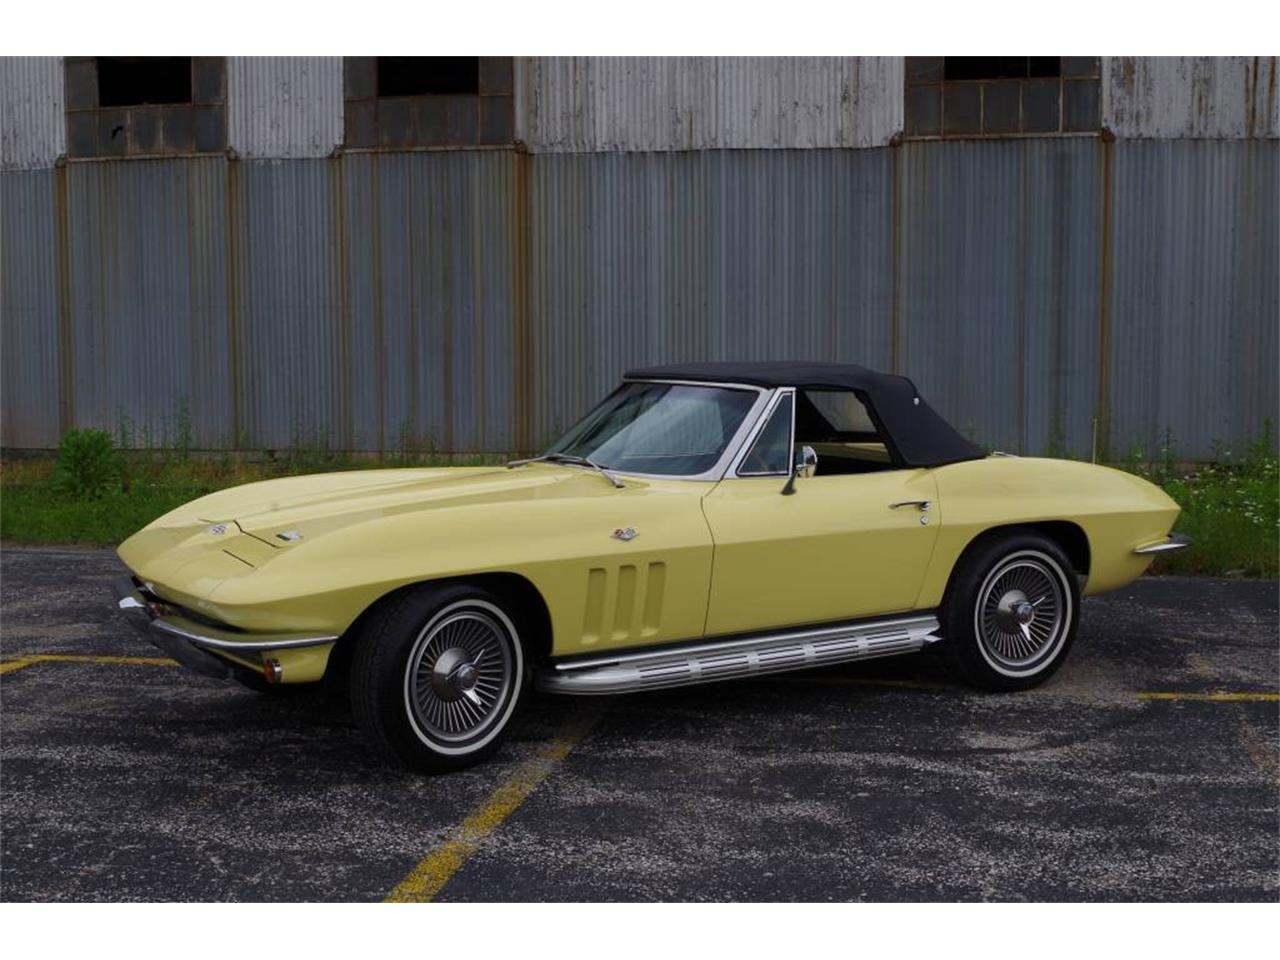 Large Picture of '66 Corvette located in Missouri - $69,900.00 Offered by Vintage Vettes, LLC - MO1Z